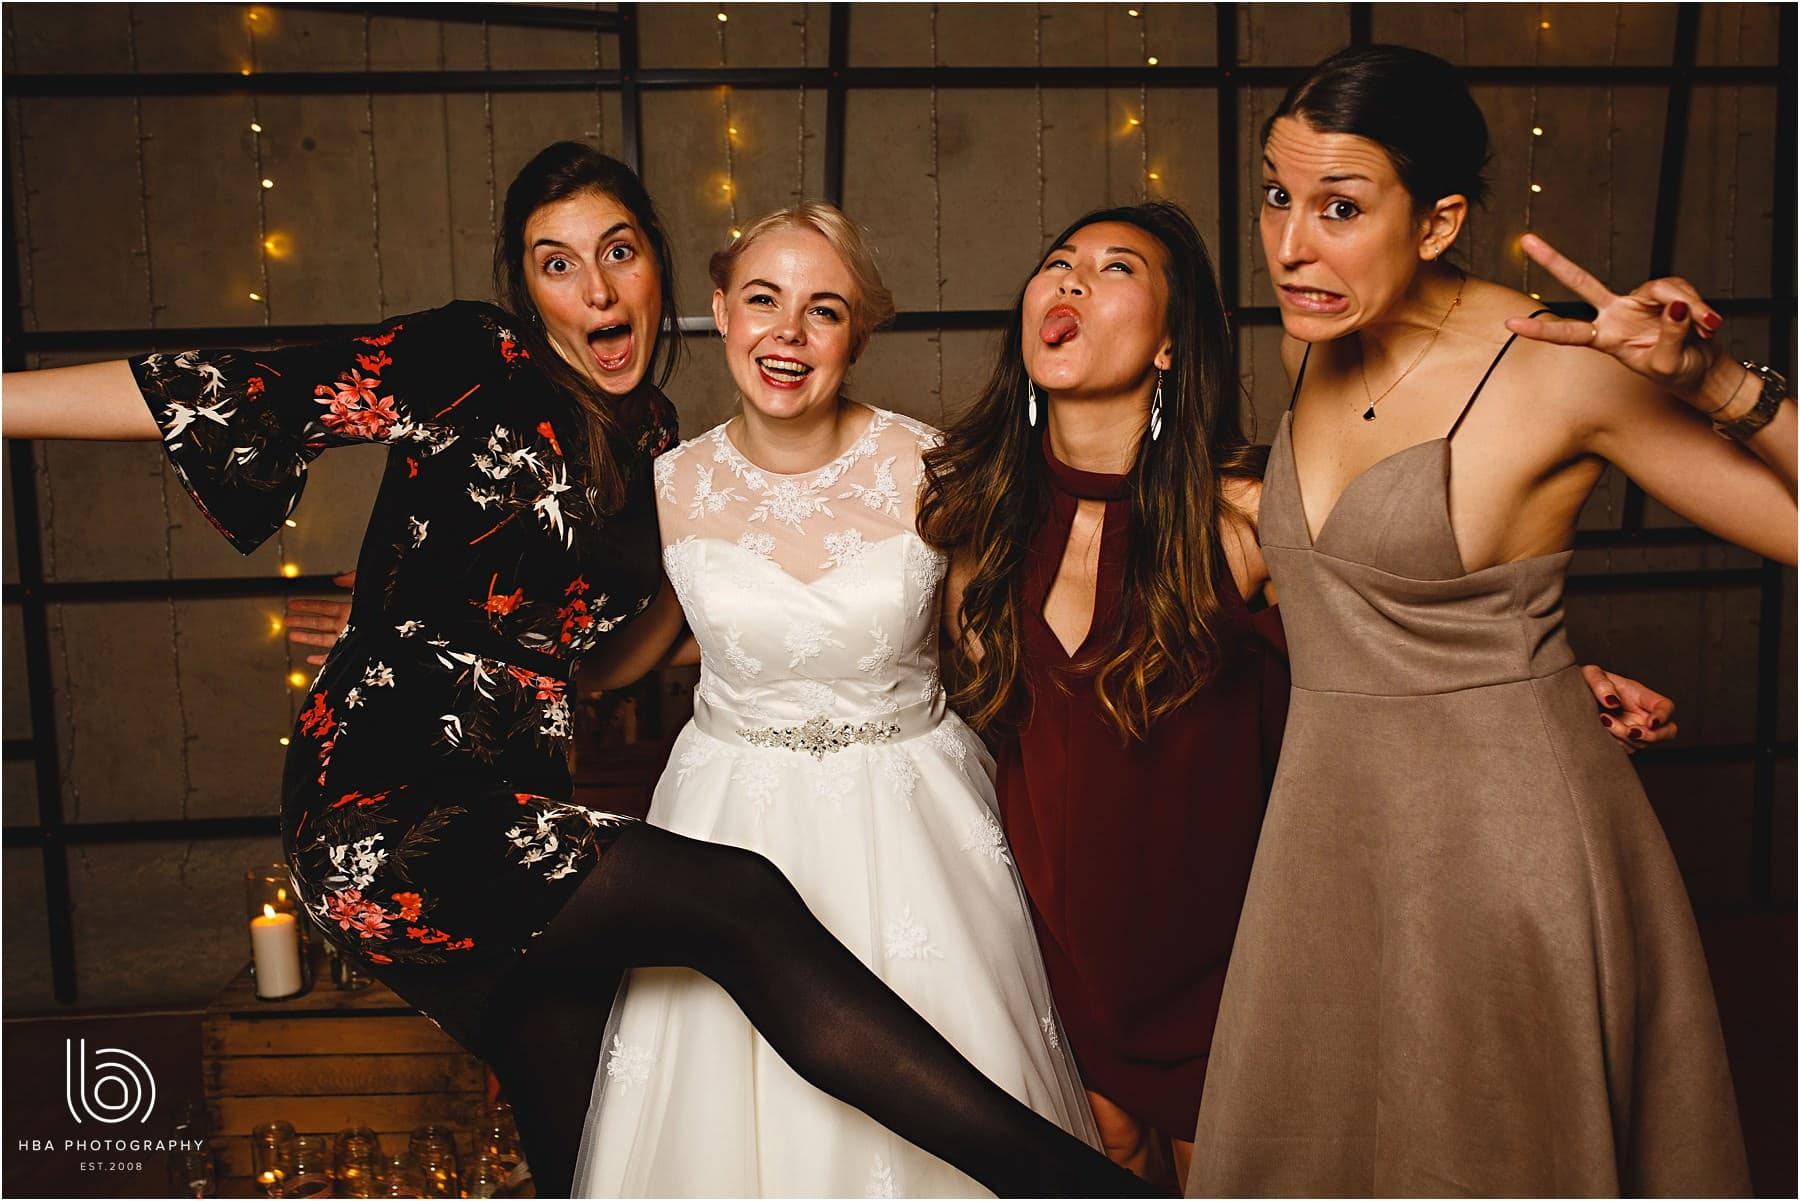 The bride and her friends together